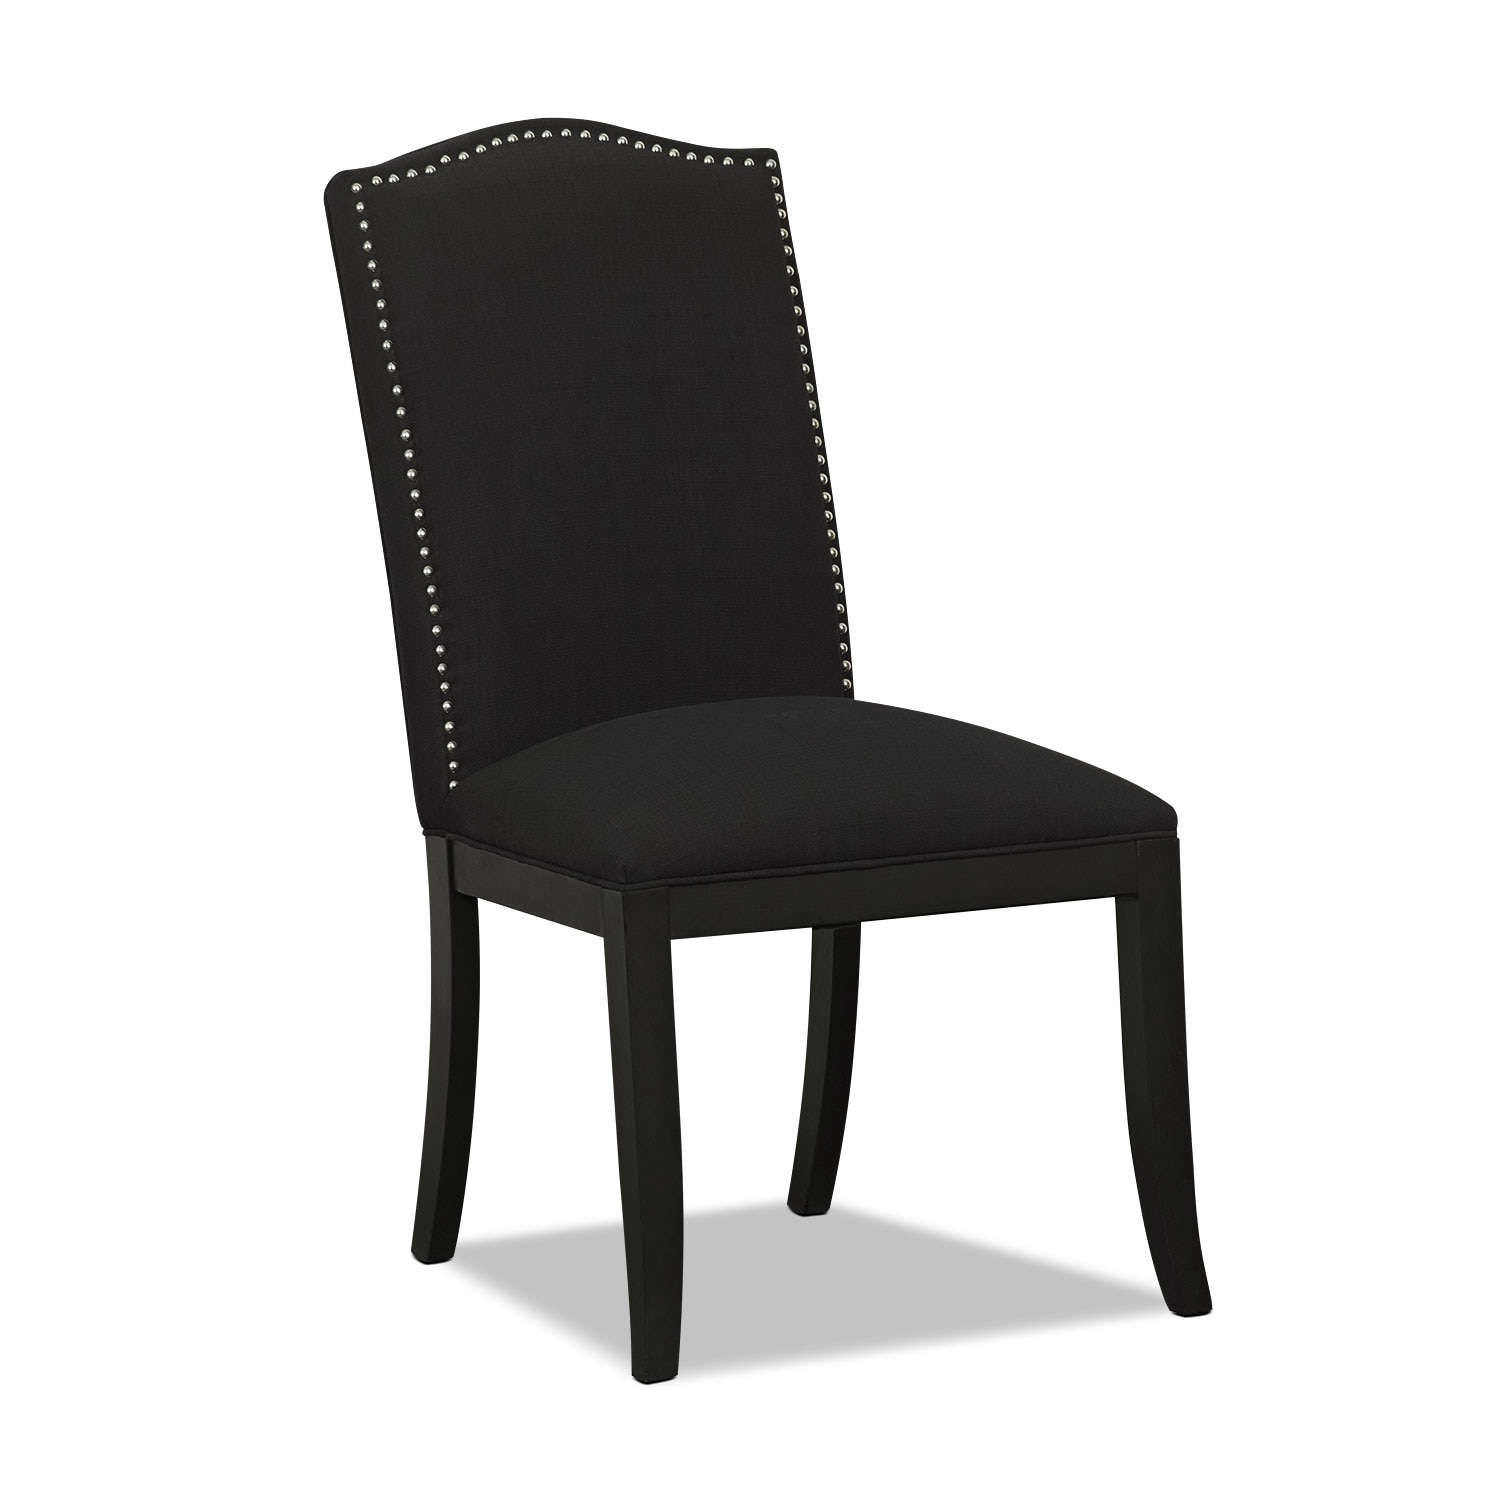 Accent Chair For Bedroom Accent Chairs For Bedroom Swivel Accent Chair With Arms Swivel